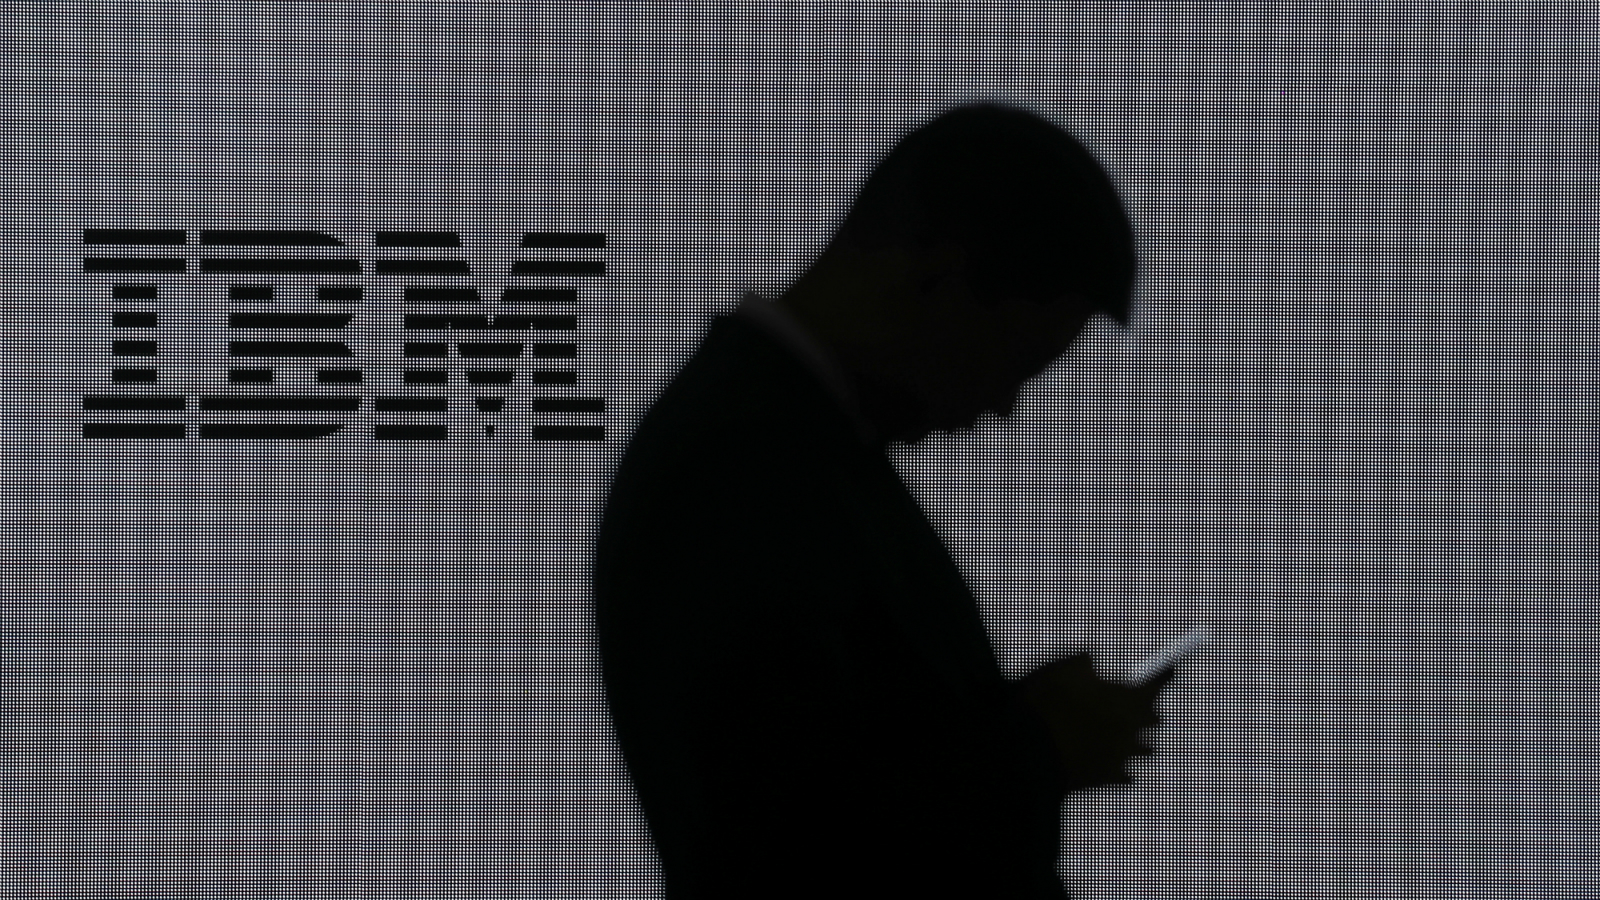 IBM (IBM) Shares Bought by Aviance Capital Management LLC